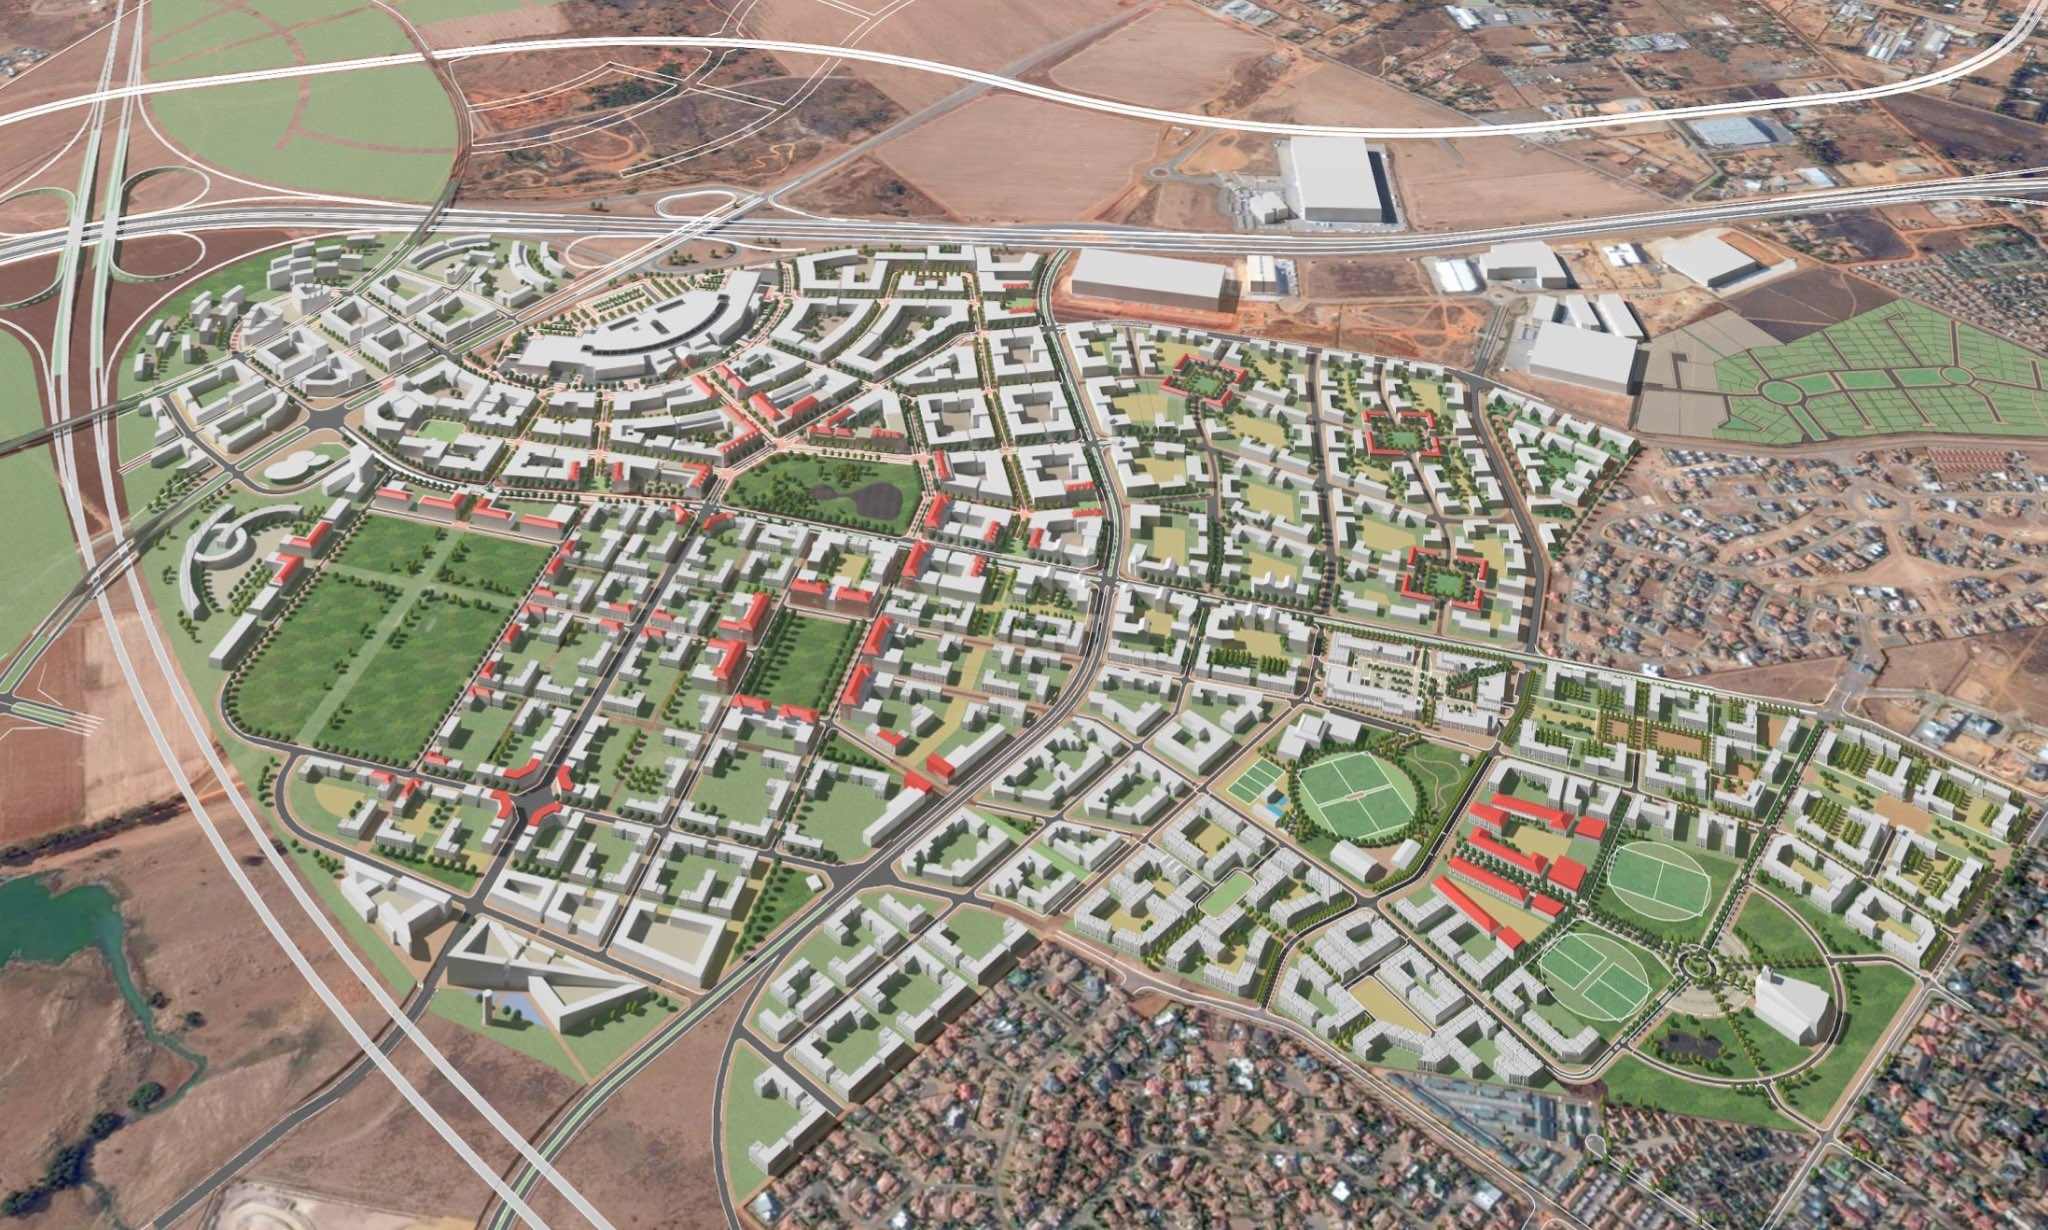 A number of local development plans, such as Riverfield (above), will be part of the Aerotropolis Master Plan. Source: City of Ekurhuleni (provided)